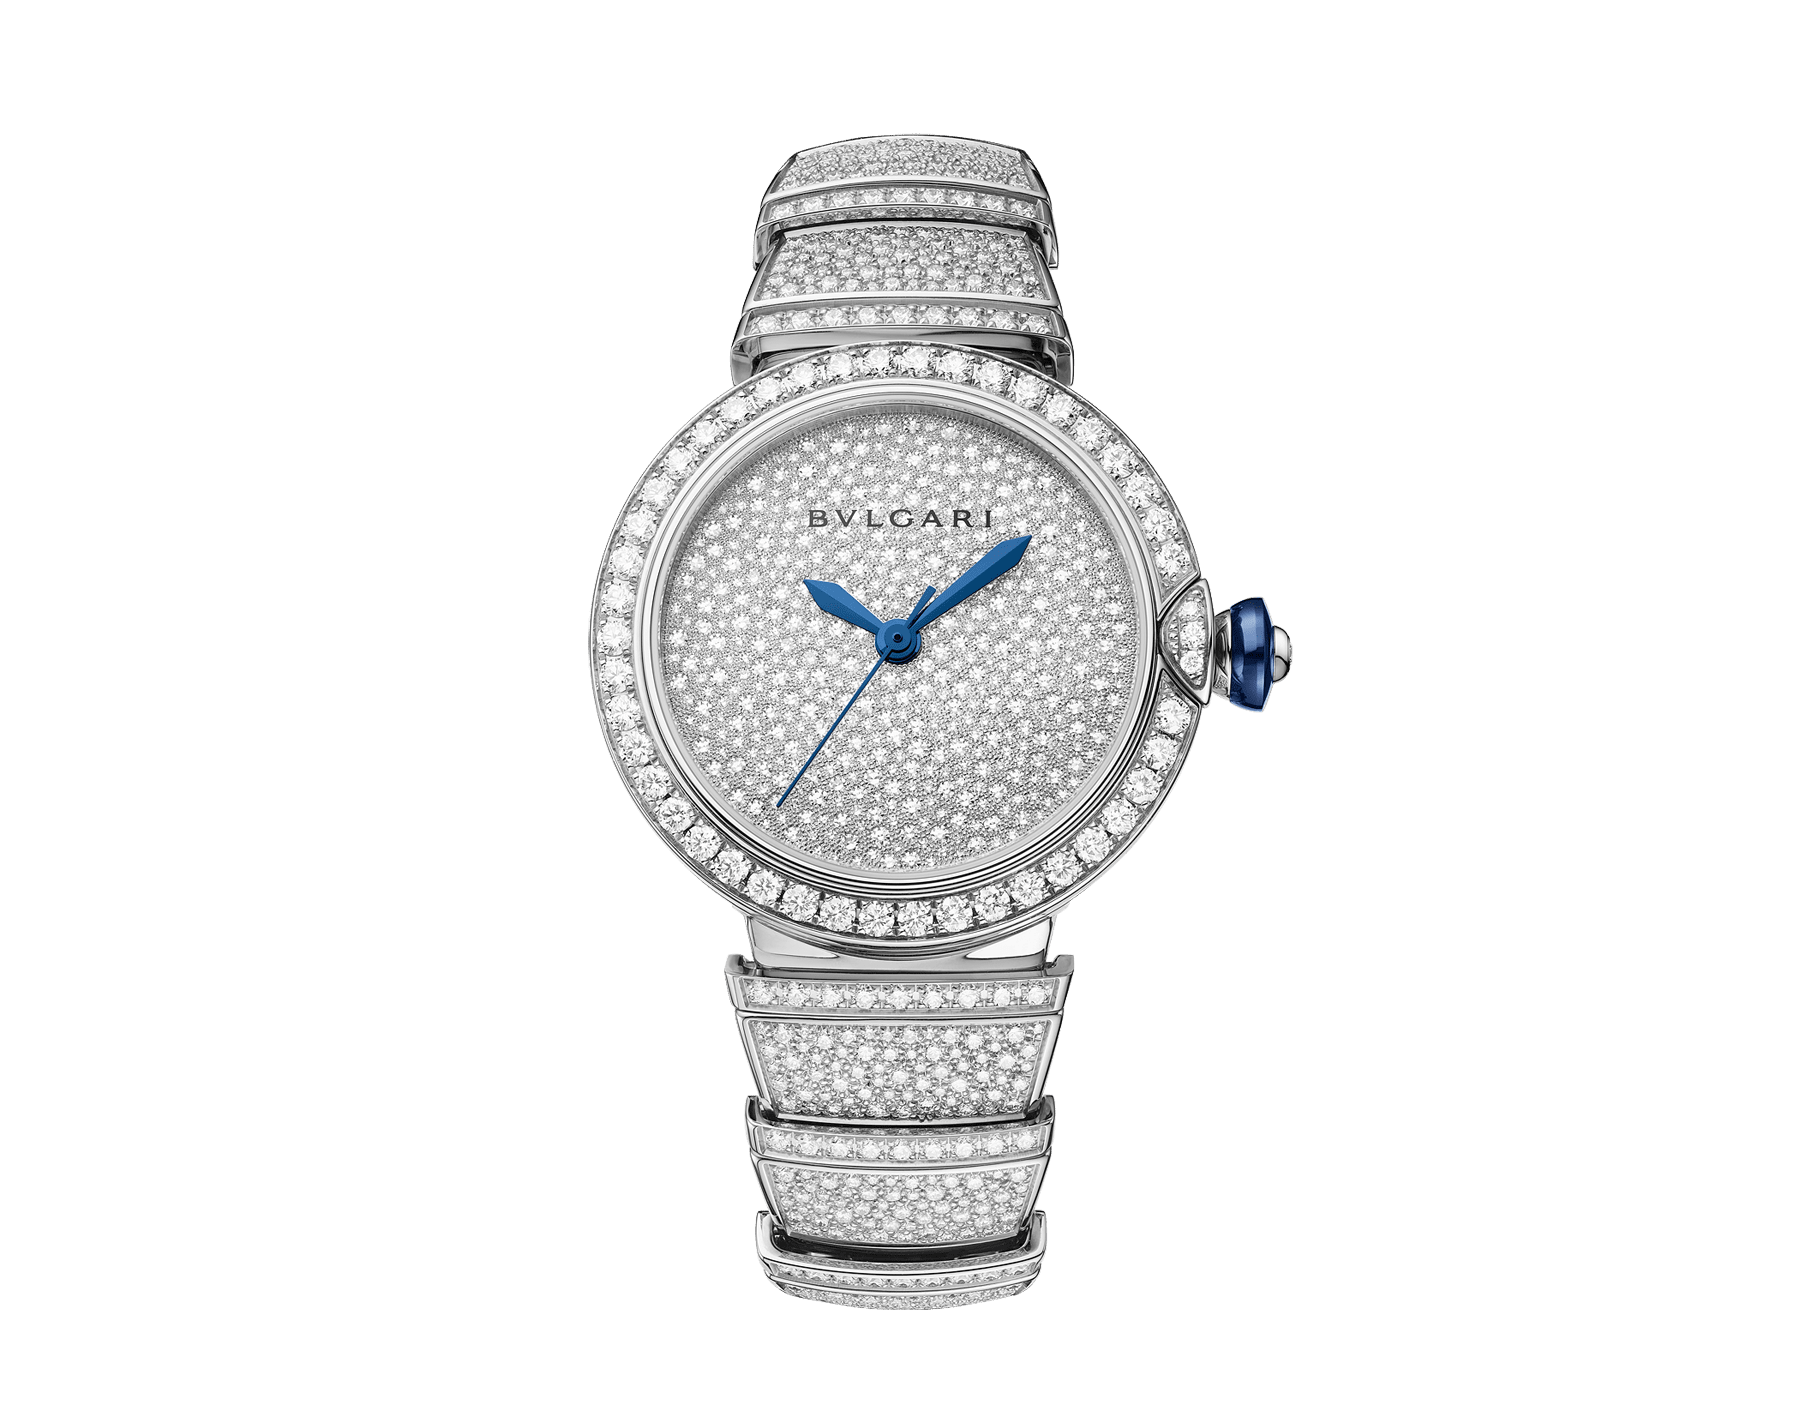 LVCEA watch in 18 kt white gold with brilliant-cut diamond set case and bracelet, and full pavé diamond dial. 102365 image 1